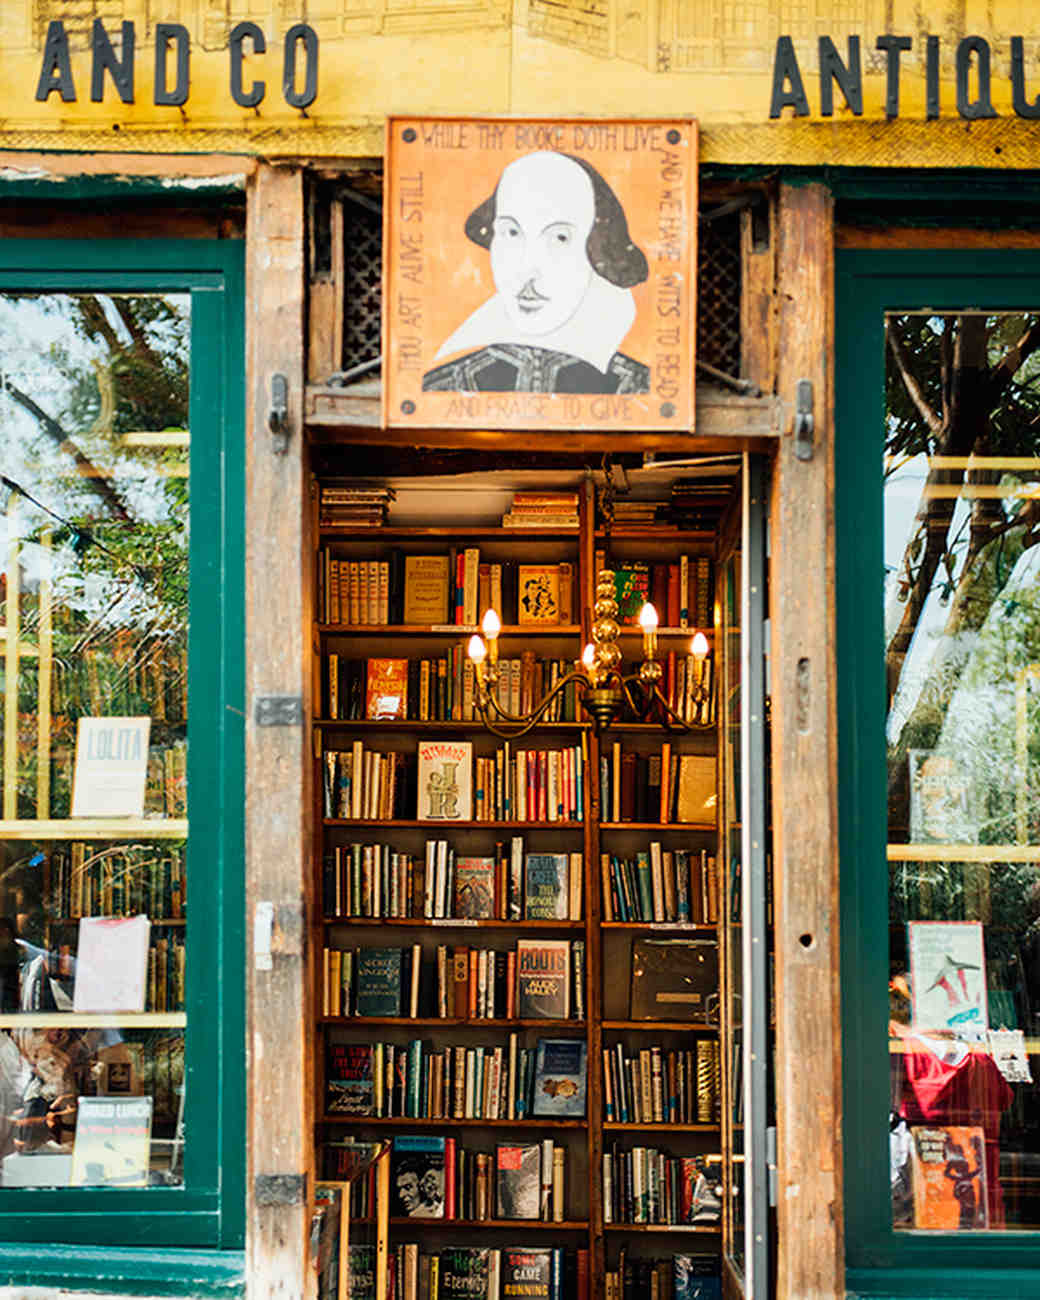 katie-mitchell-photography-where-to-propose-in-paris-shakespeare-co-books-0815.jpg